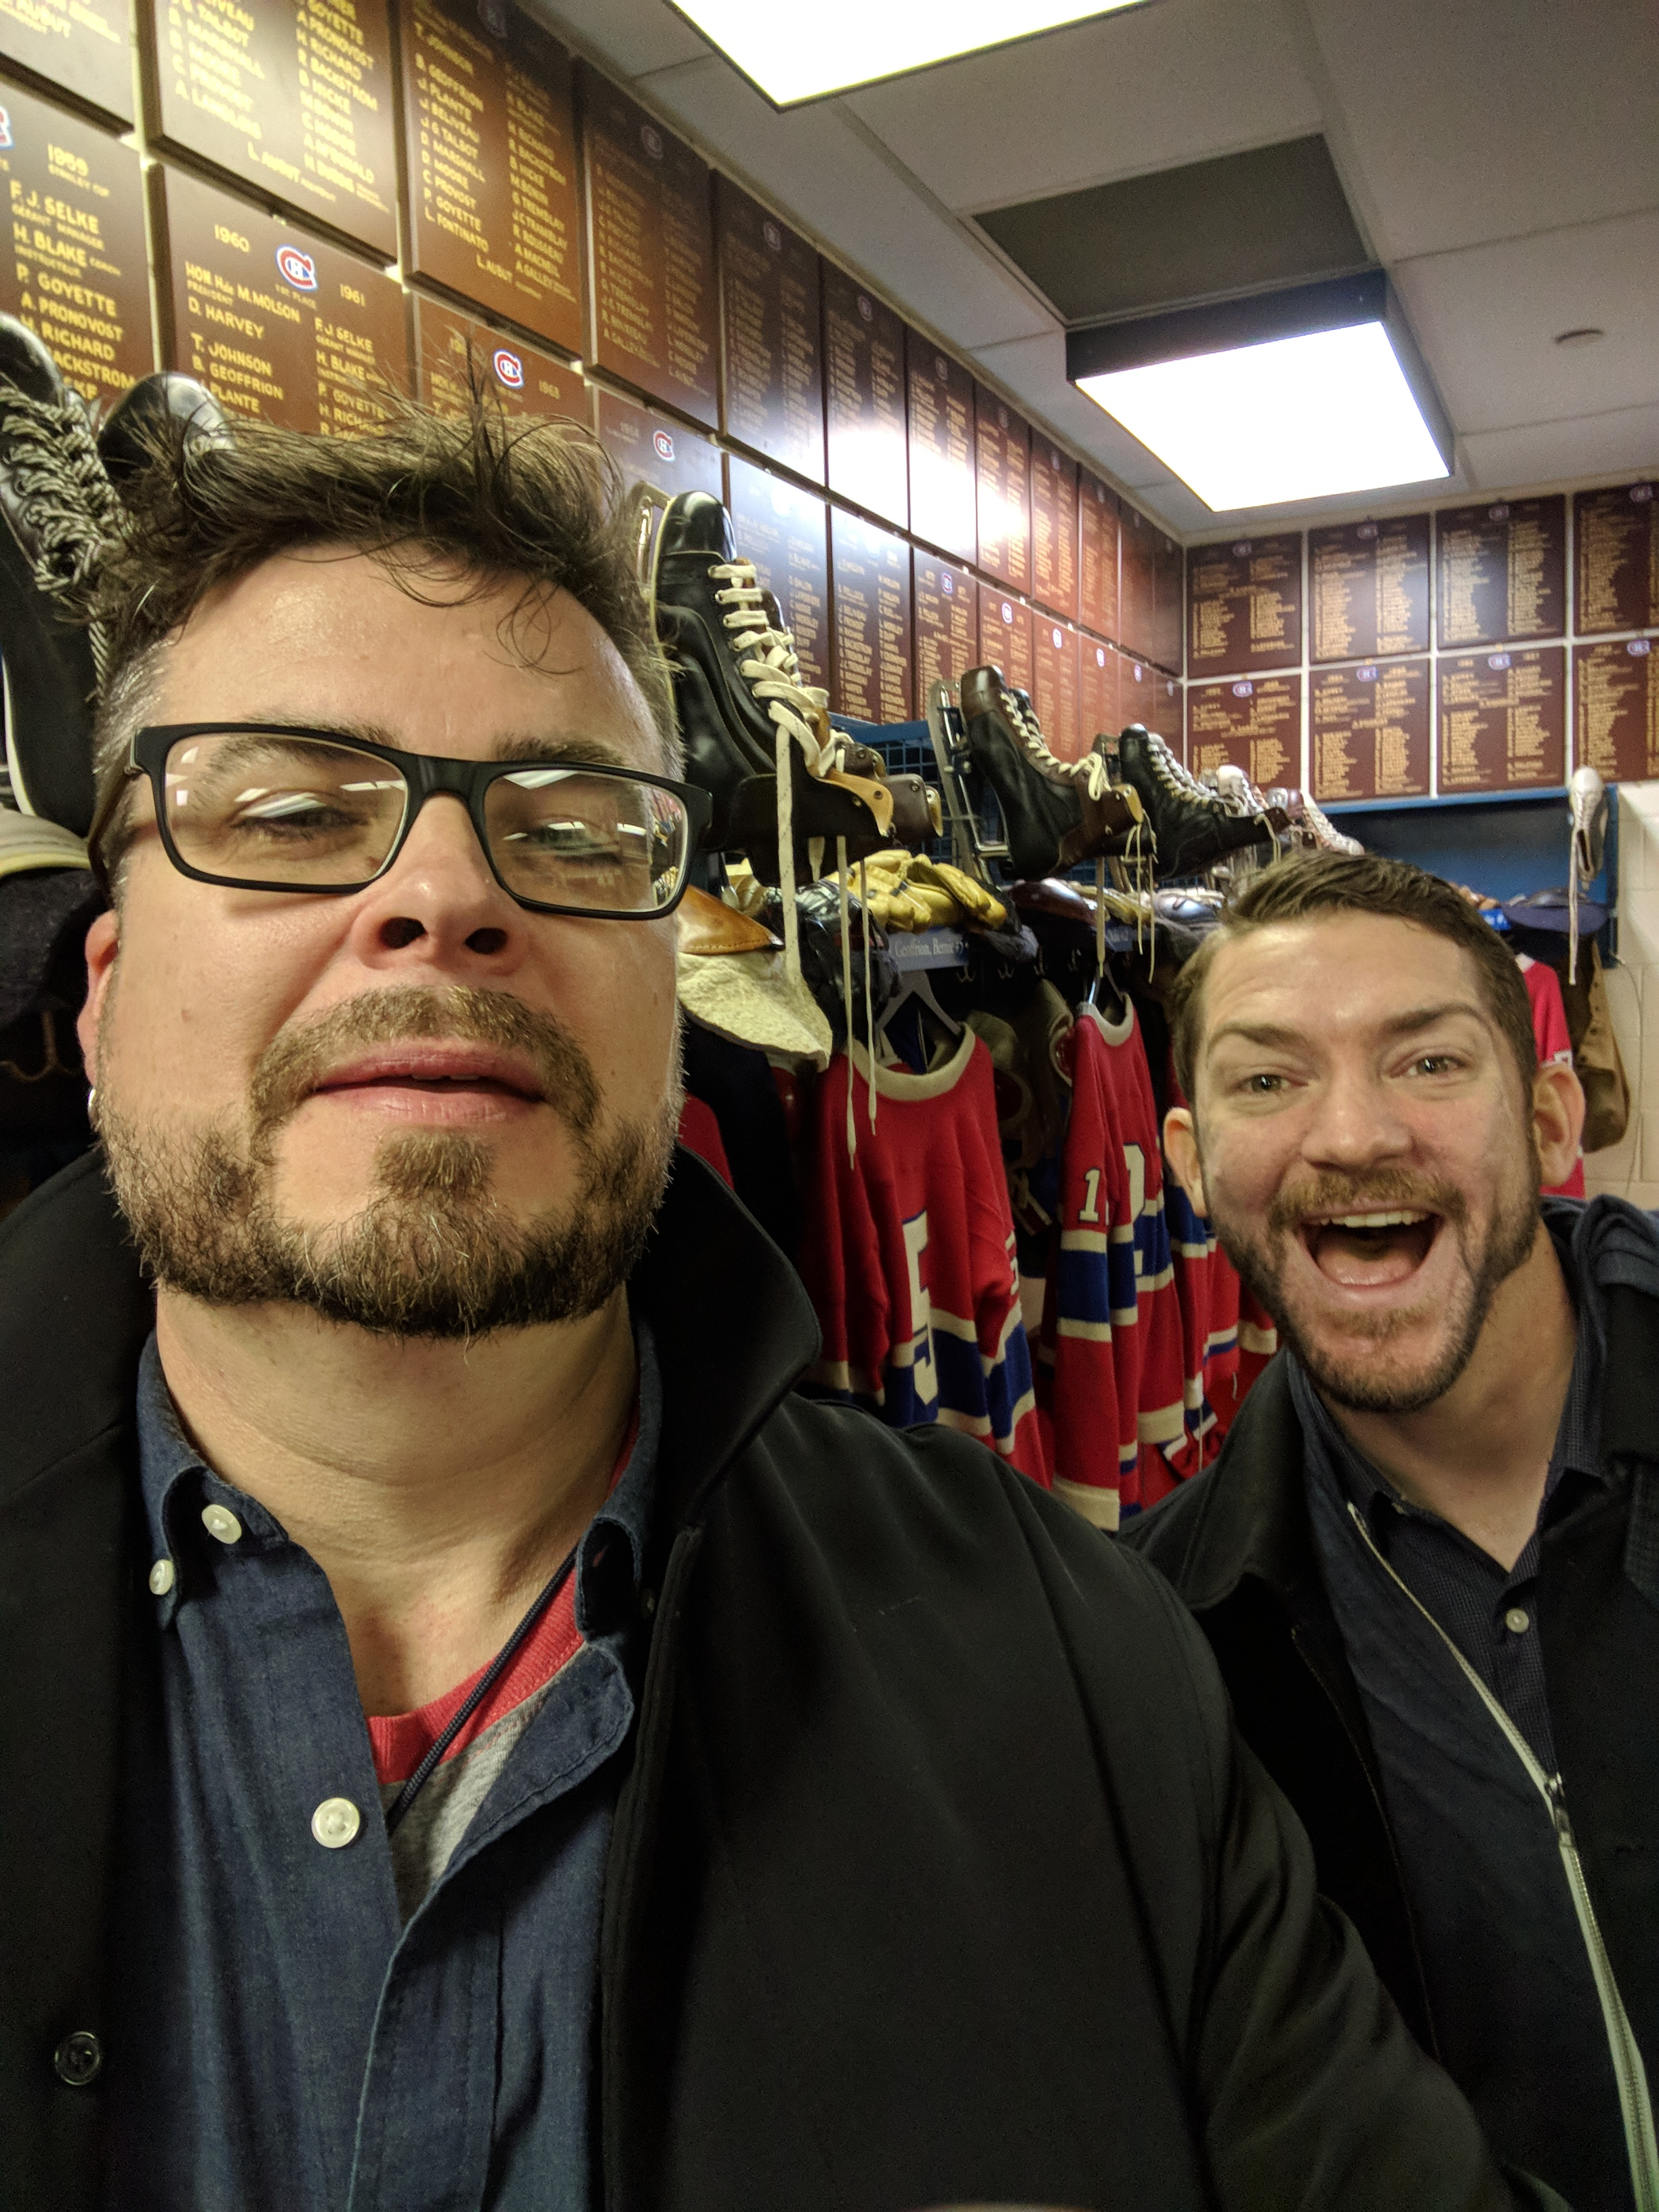 Dan wanted to see the Hockey Hall of Fame before the Dinner.